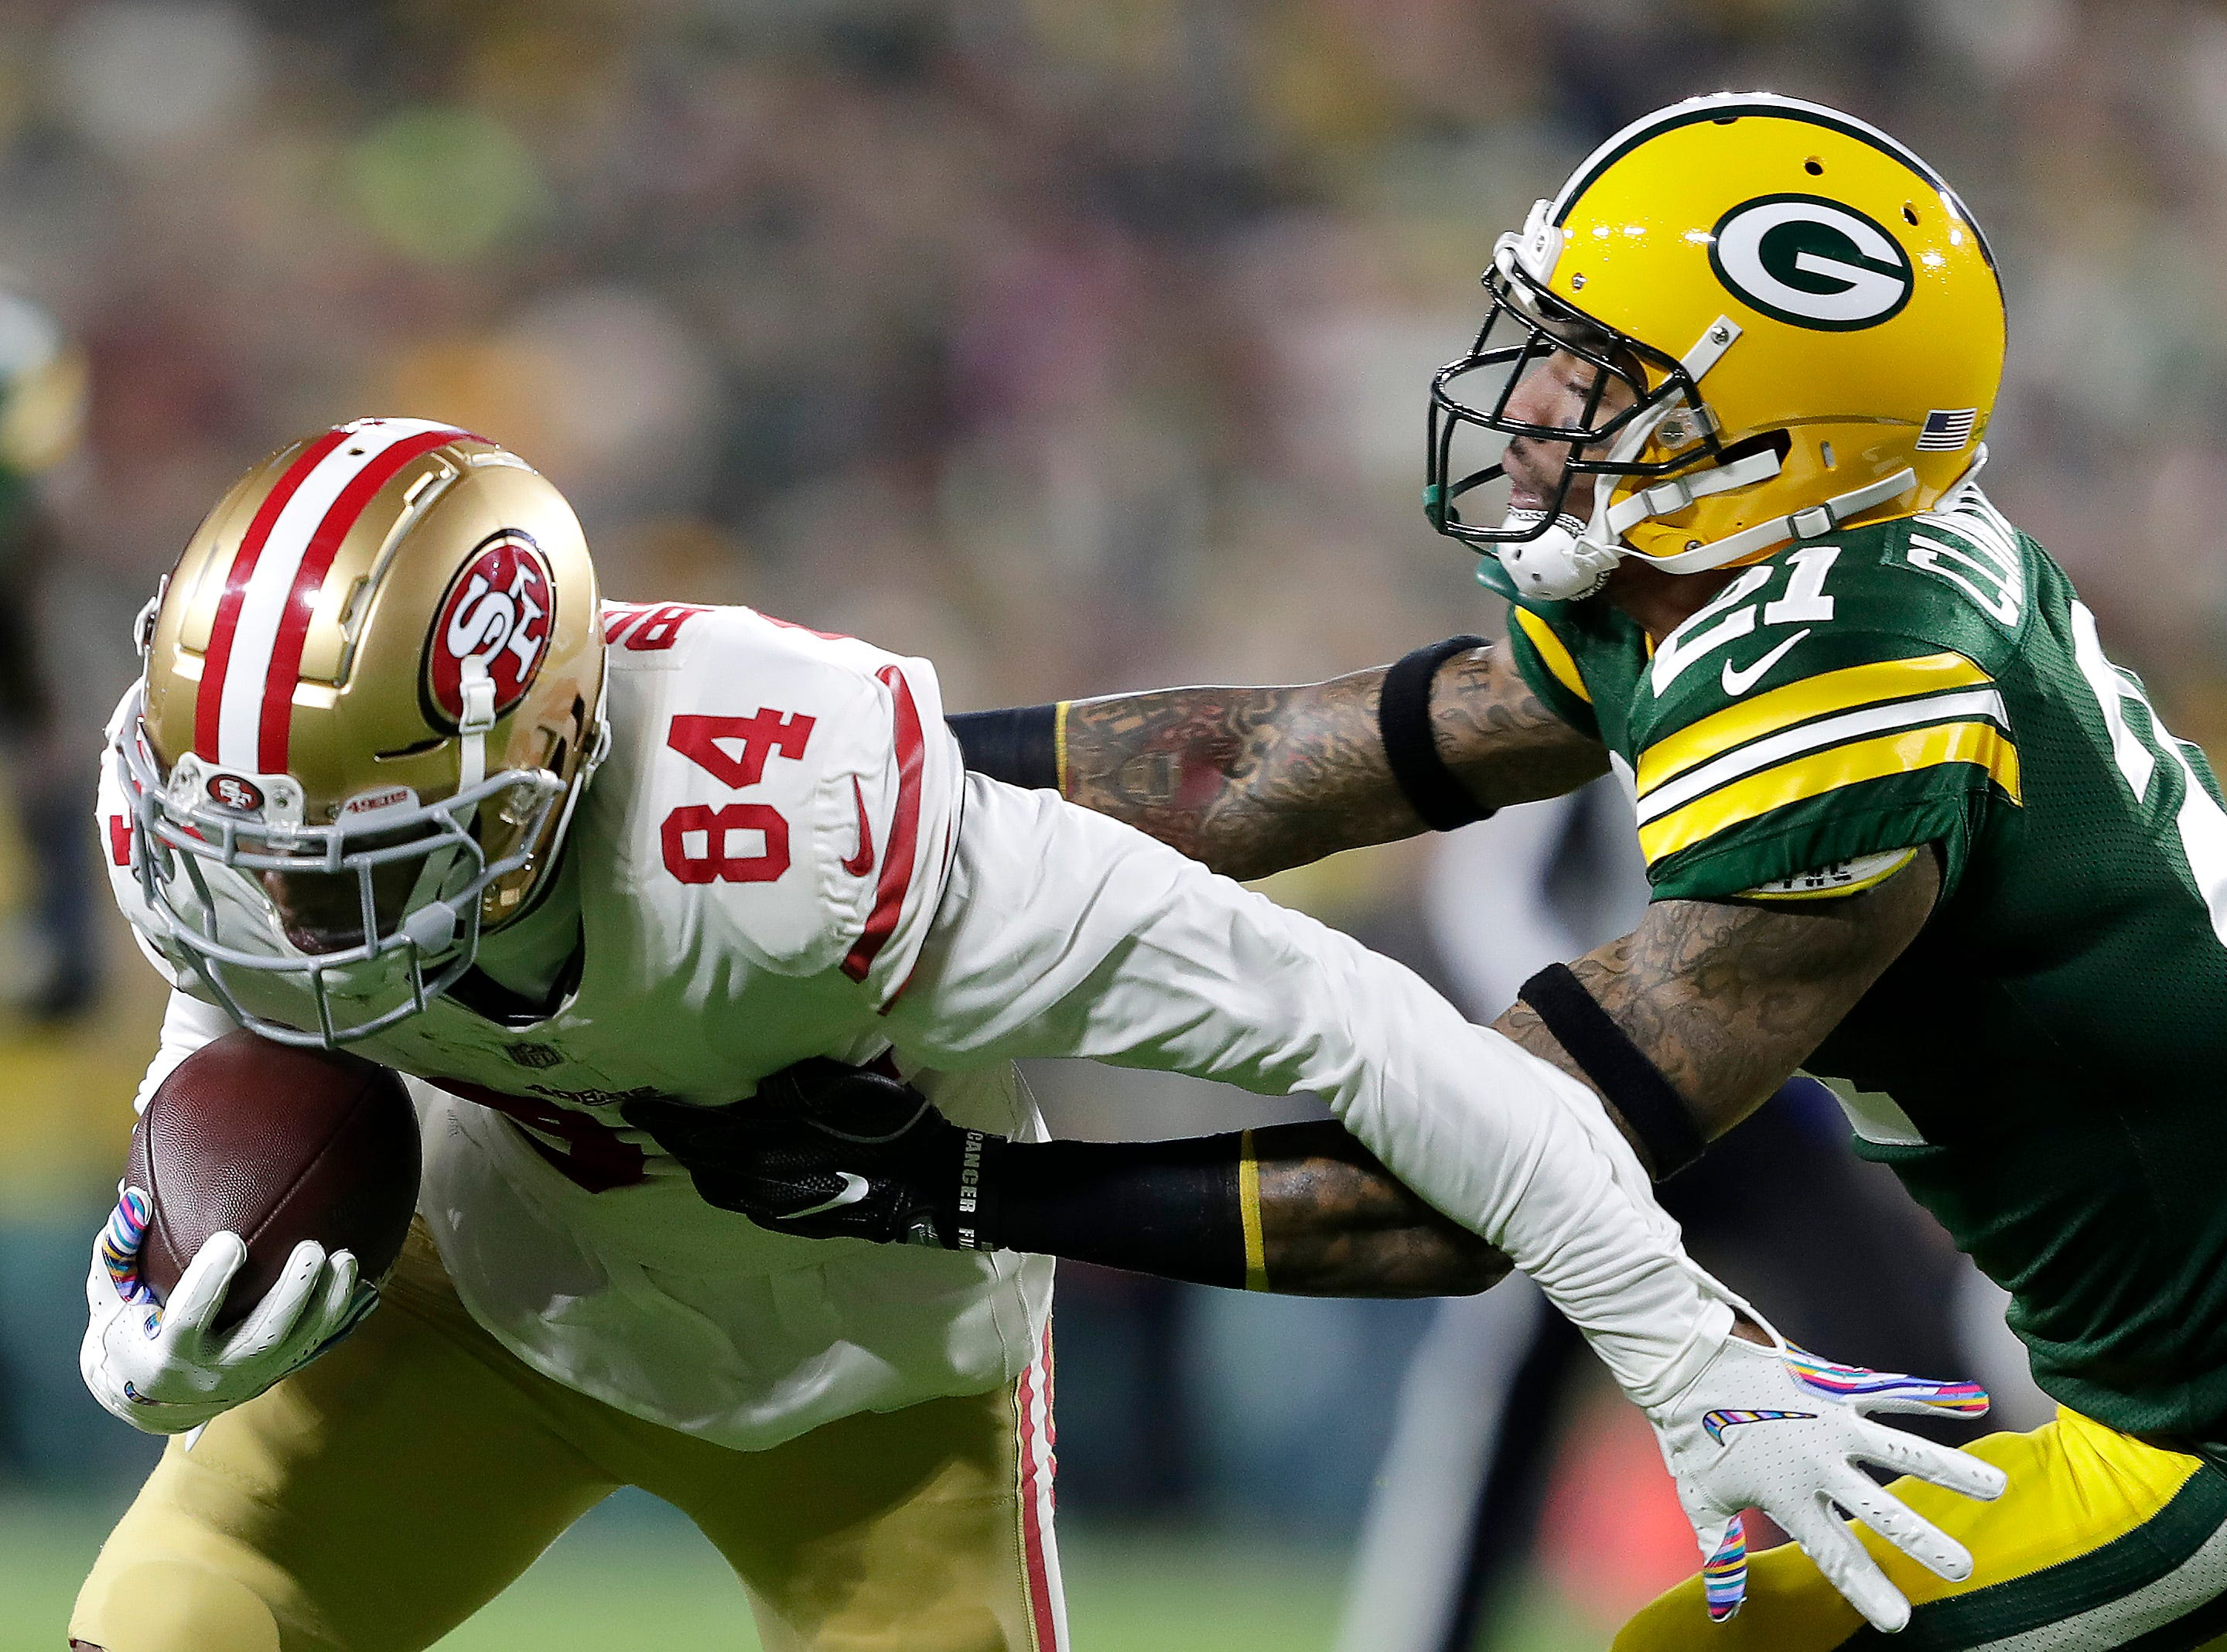 Green Bay Packers free safety Ha Ha Clinton-Dix against San Francisco 49ers wide receiver Kendrick Bourne on Monday, October 15, 2018, at Lambeau Field in Green Bay, Wis. The Packers defeated the 49ers 33 to 30.